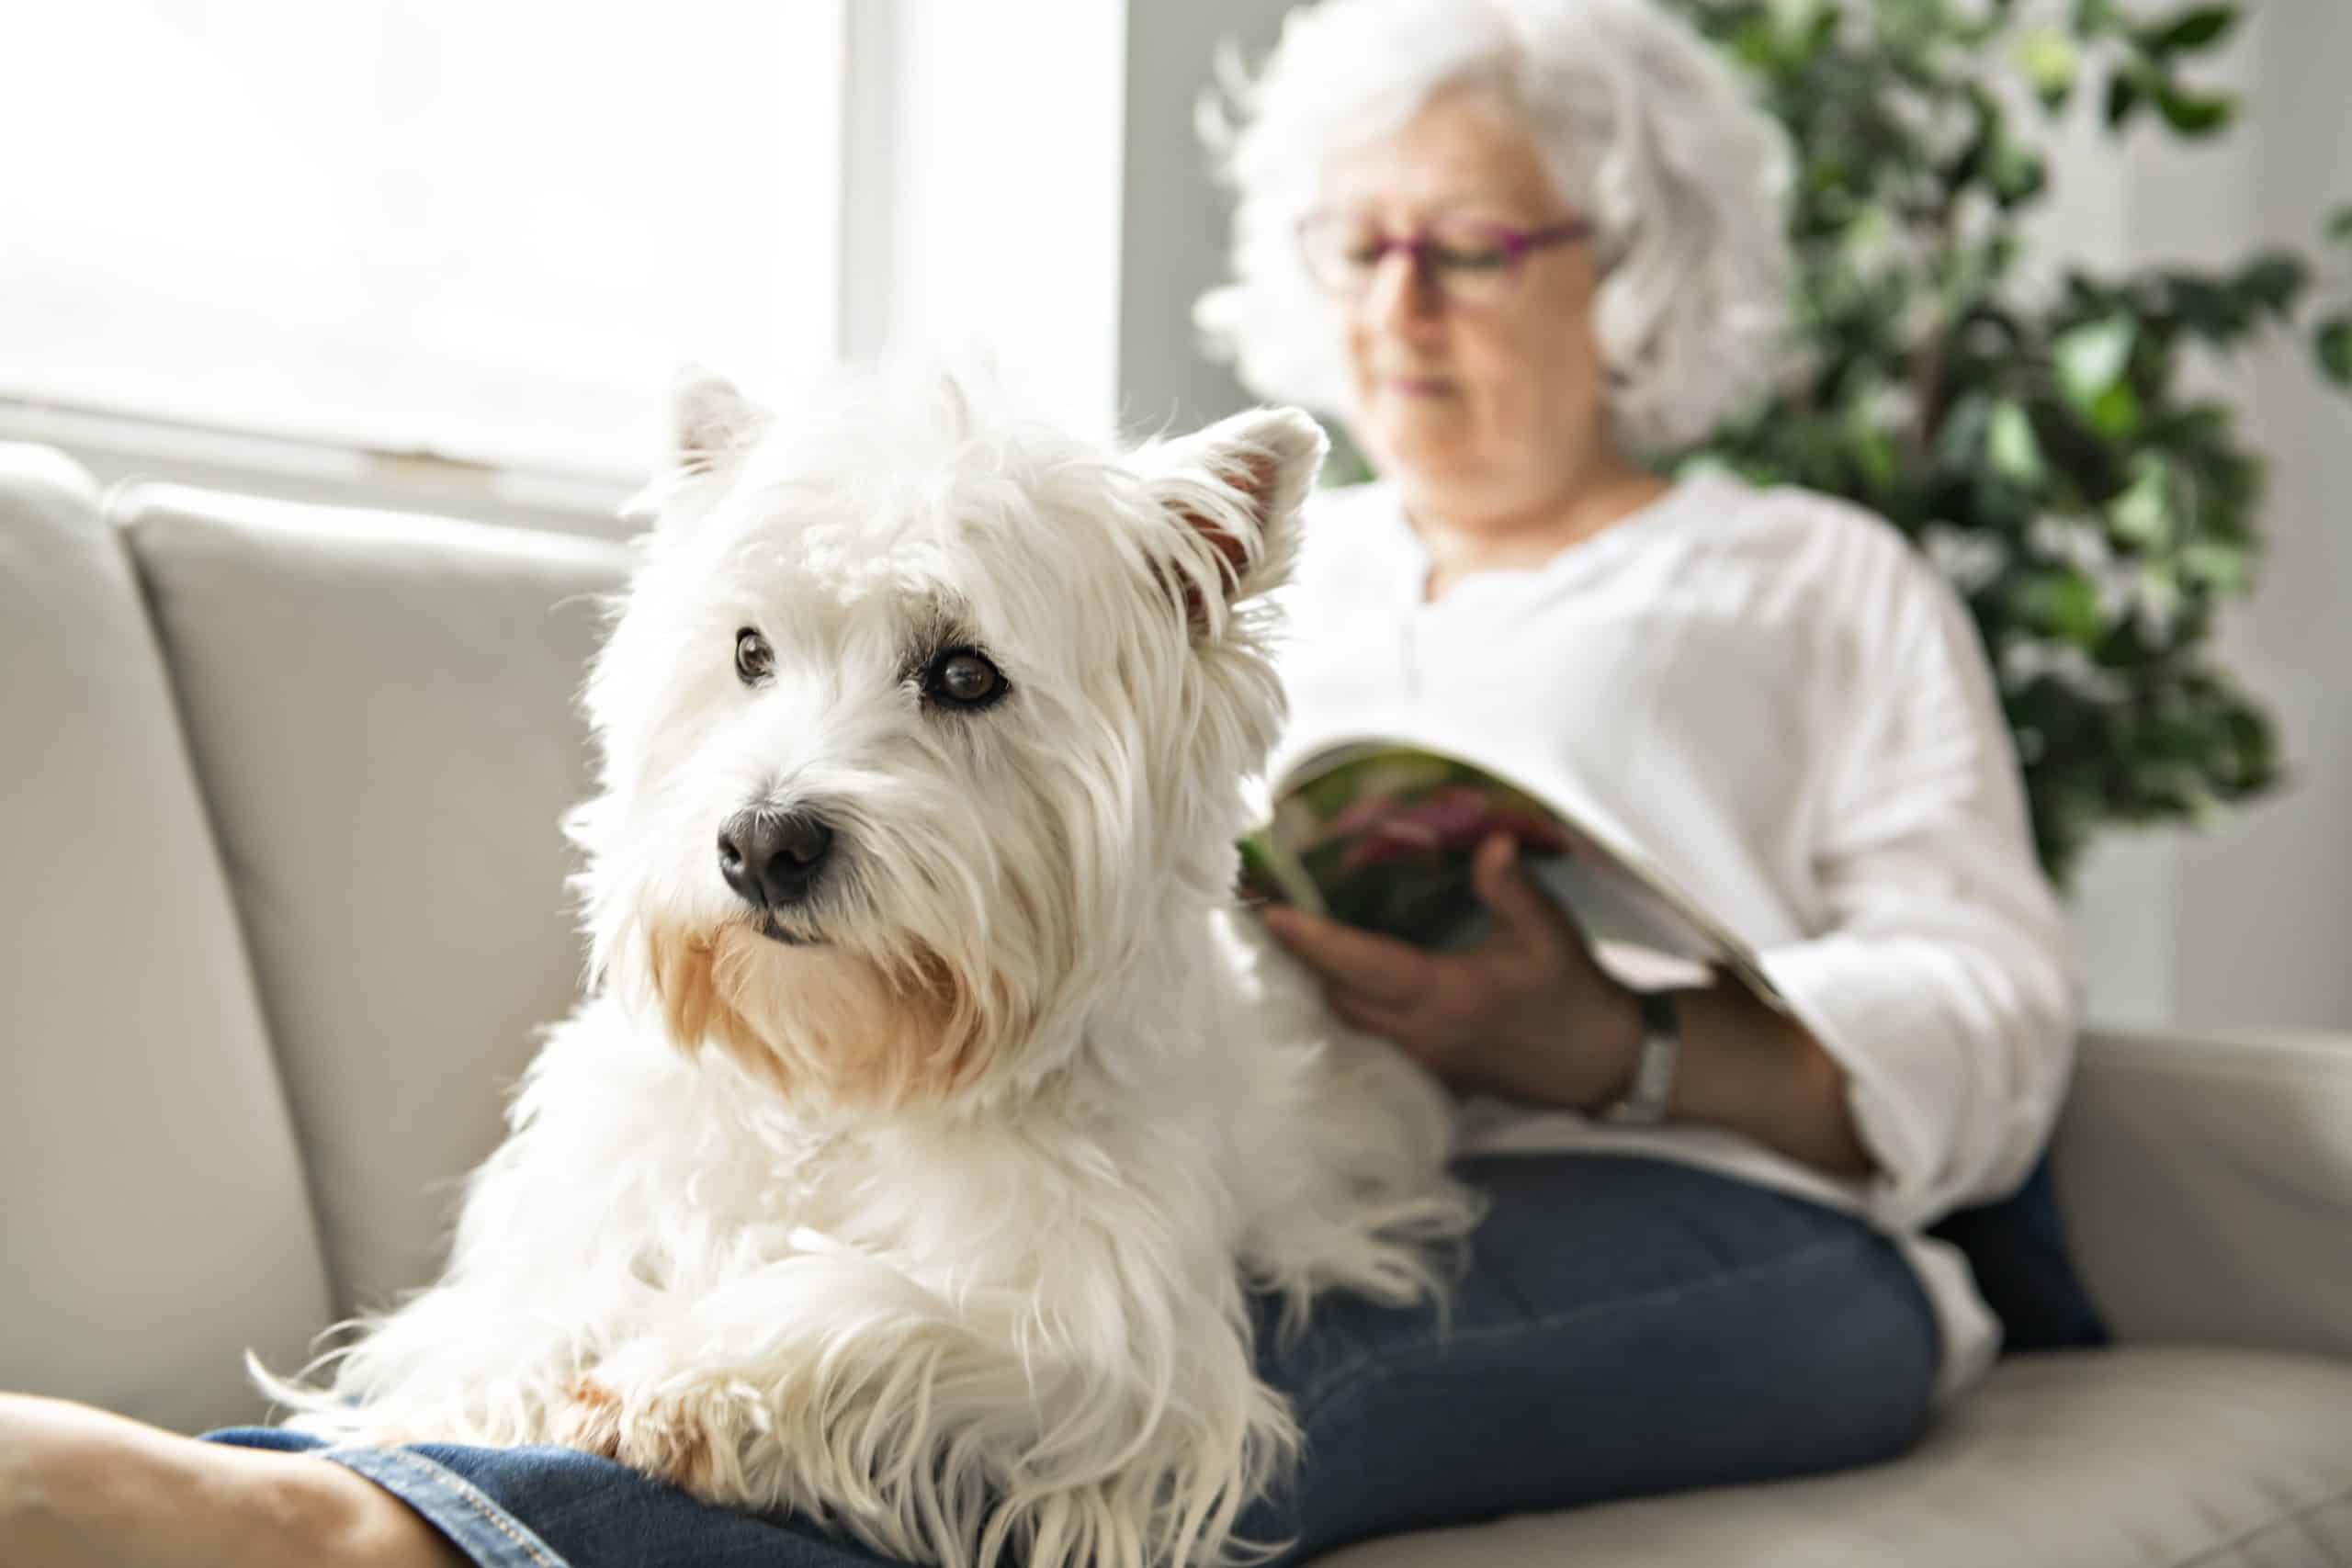 Older woman sits on couch with Westie. As your canine companion ages, try your best to factor in more quality time together.